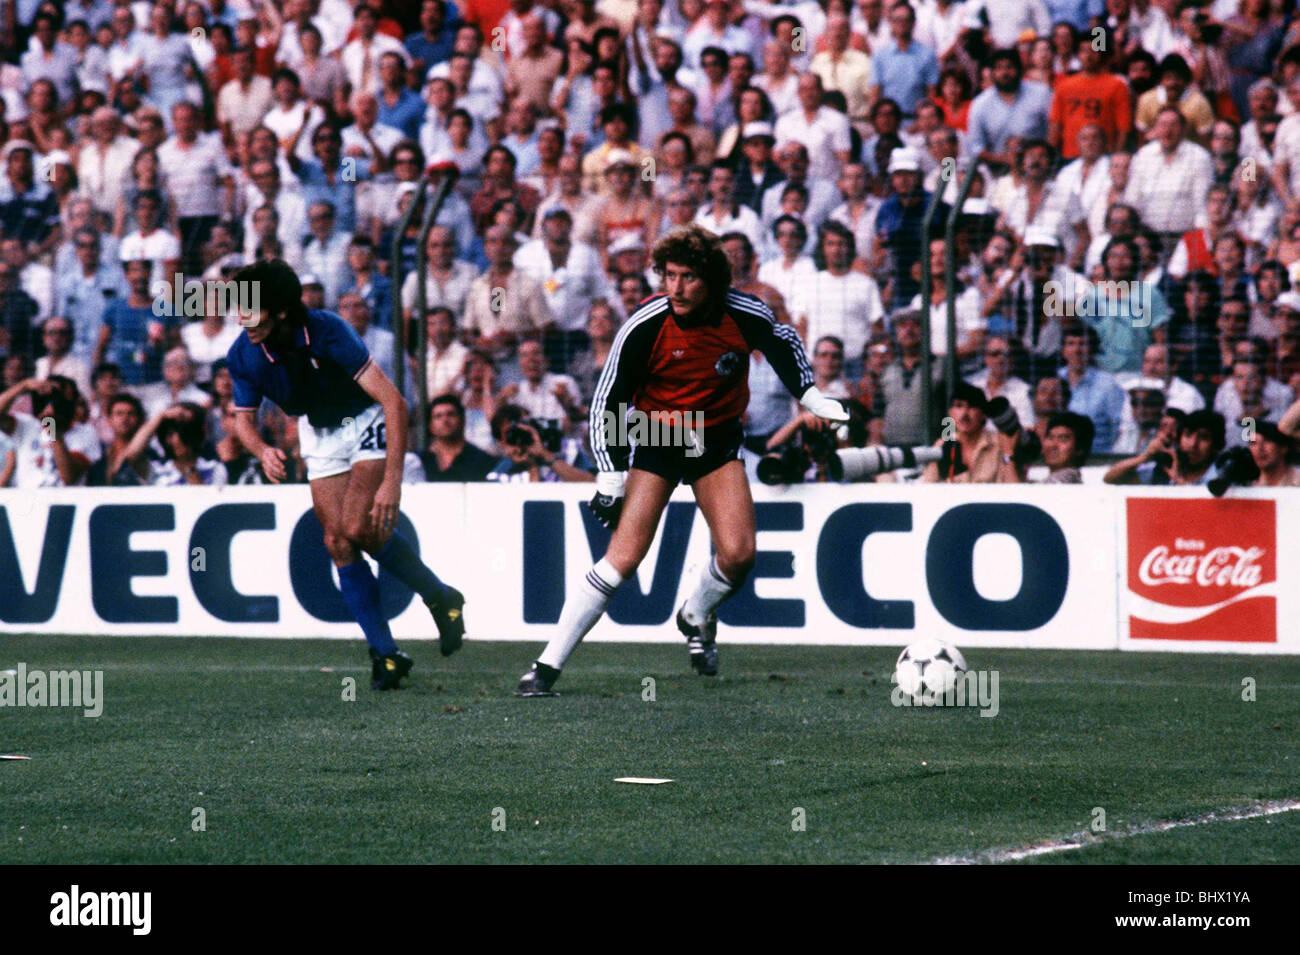 football world cup final 1982 photos football world cup final 1982 images alamy. Black Bedroom Furniture Sets. Home Design Ideas